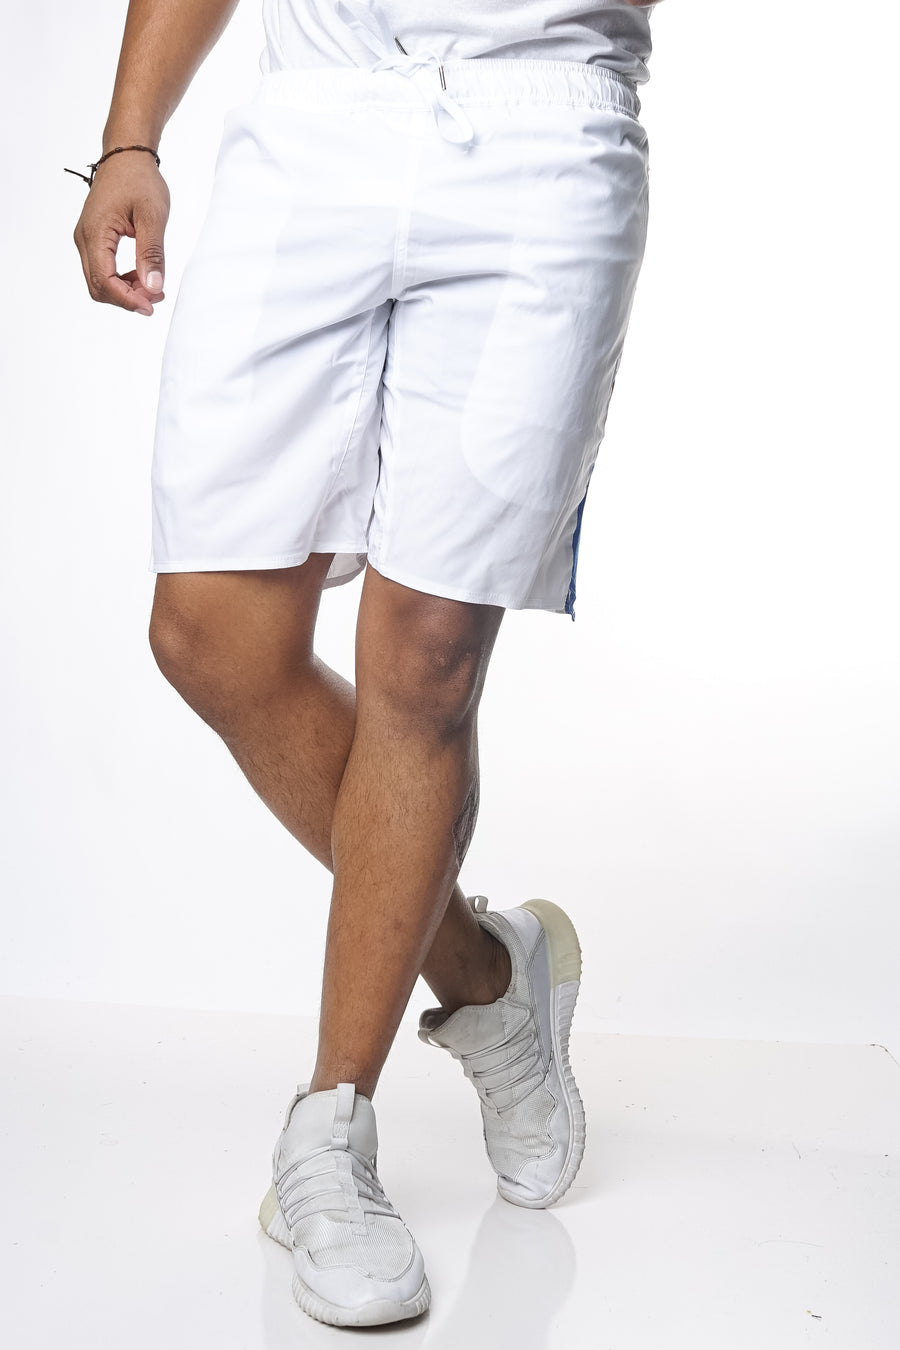 HDMH Training Shorts - White/Royal Blue